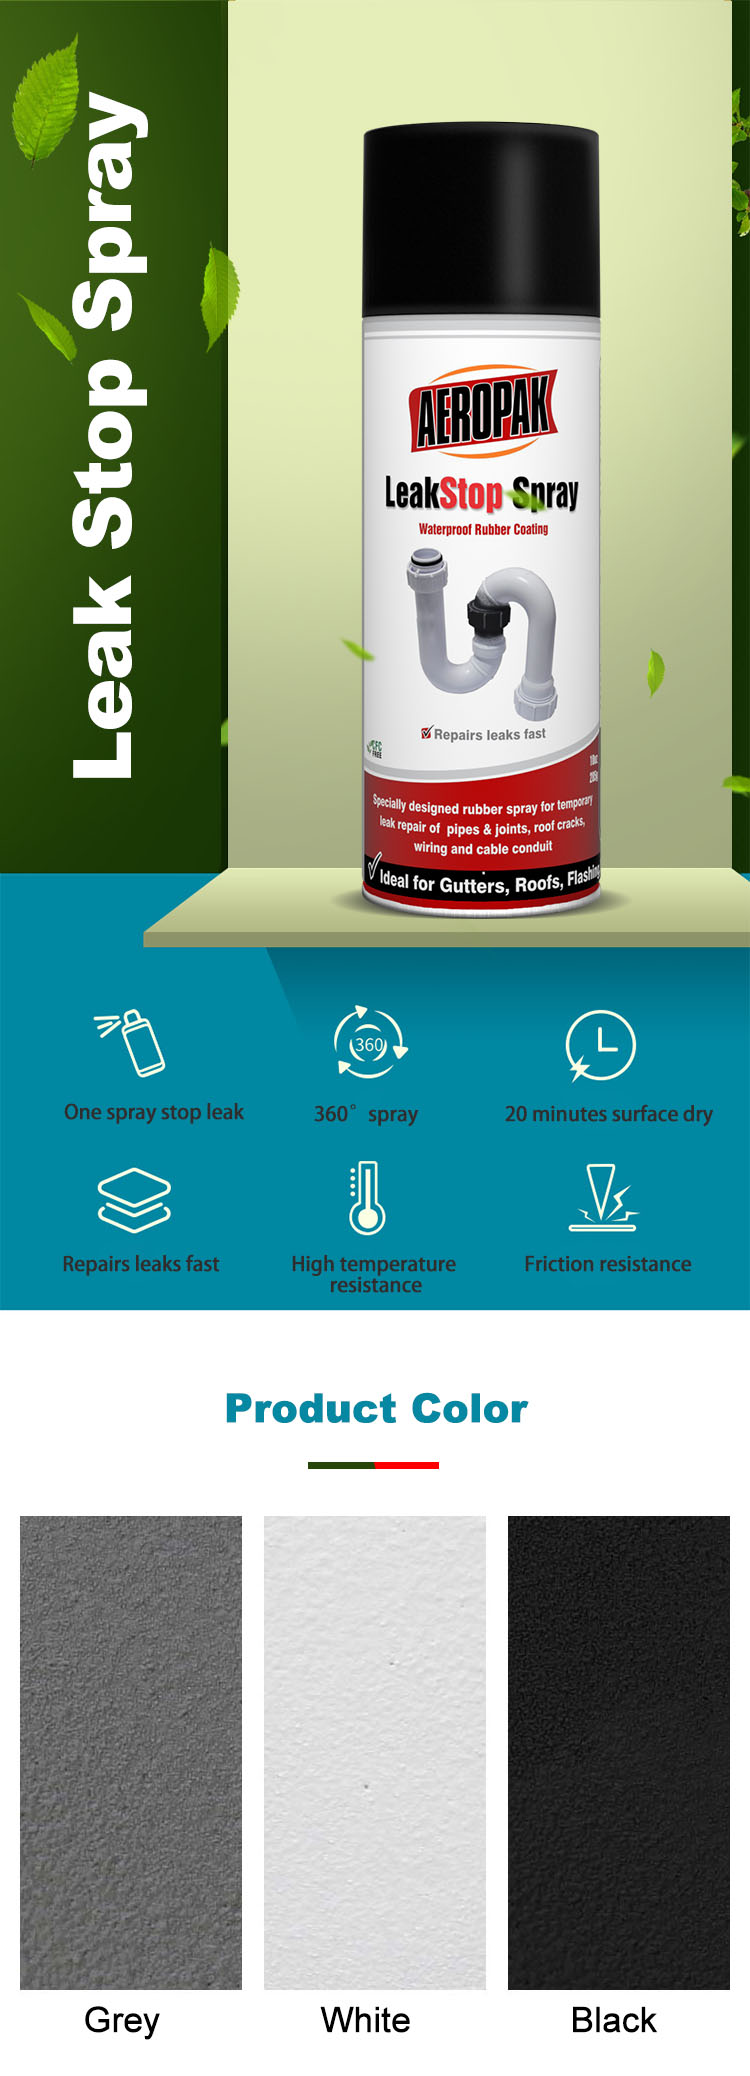 Aerosol Waterproof Roof Sealant Spray Paint Rubberized Coating for Stop Leak